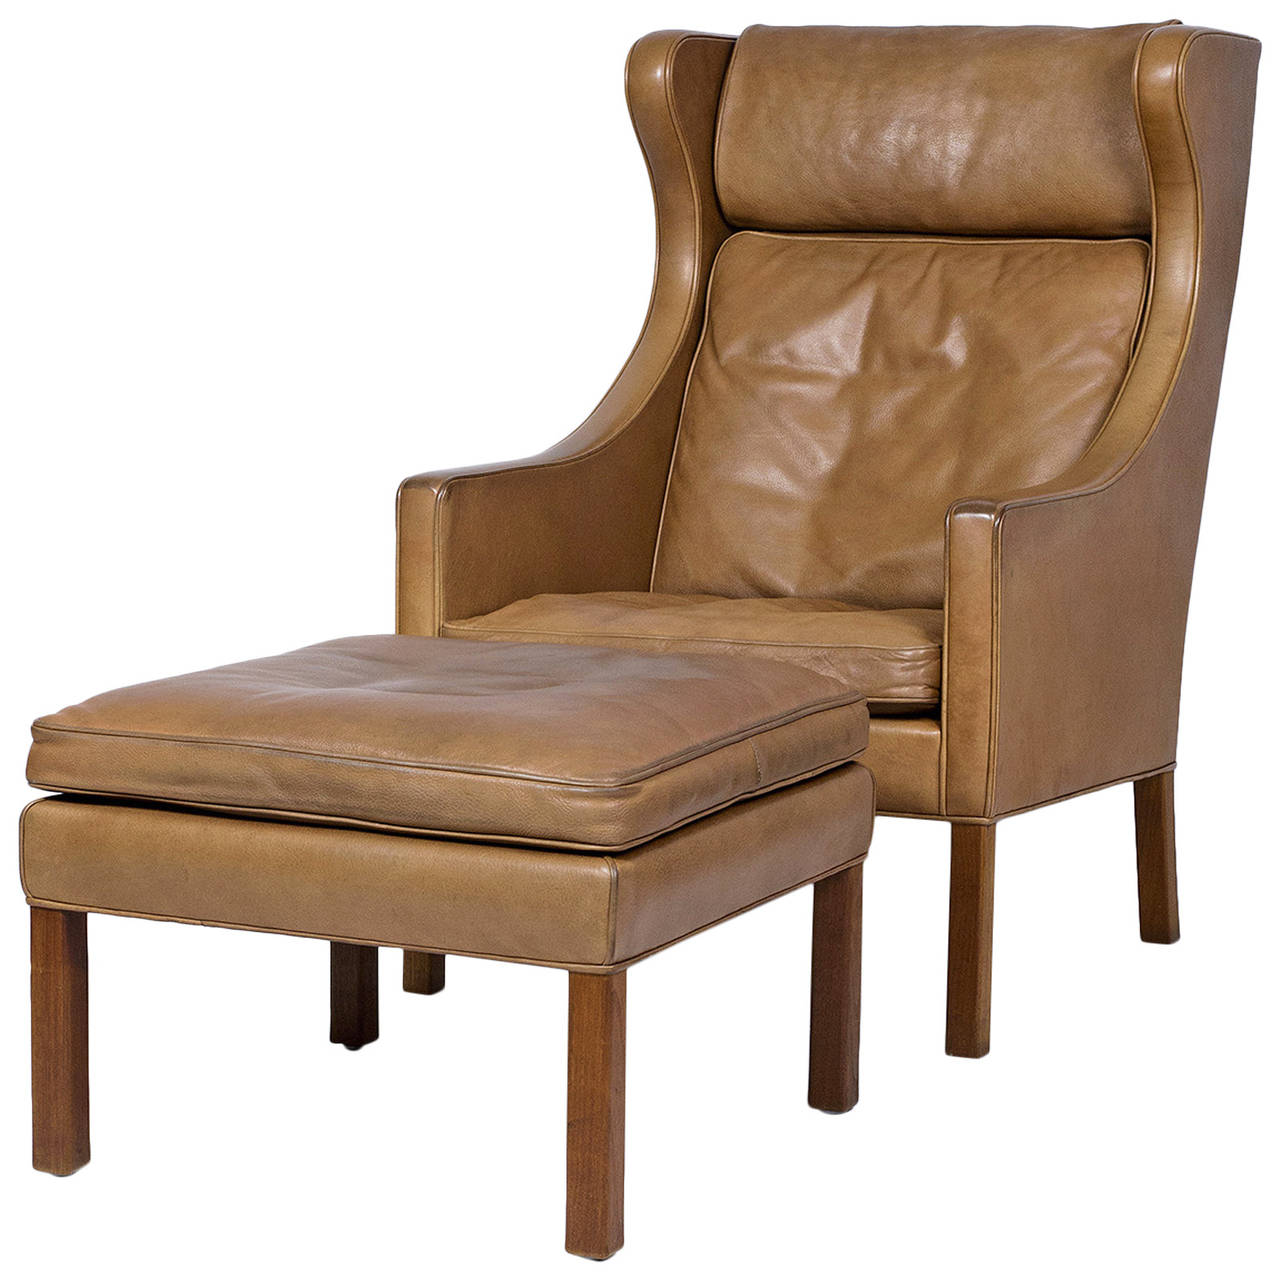 leather wingback chairs chair cover hire aldershot borge mogensen and stool denmark 50 2886162 l jpeg